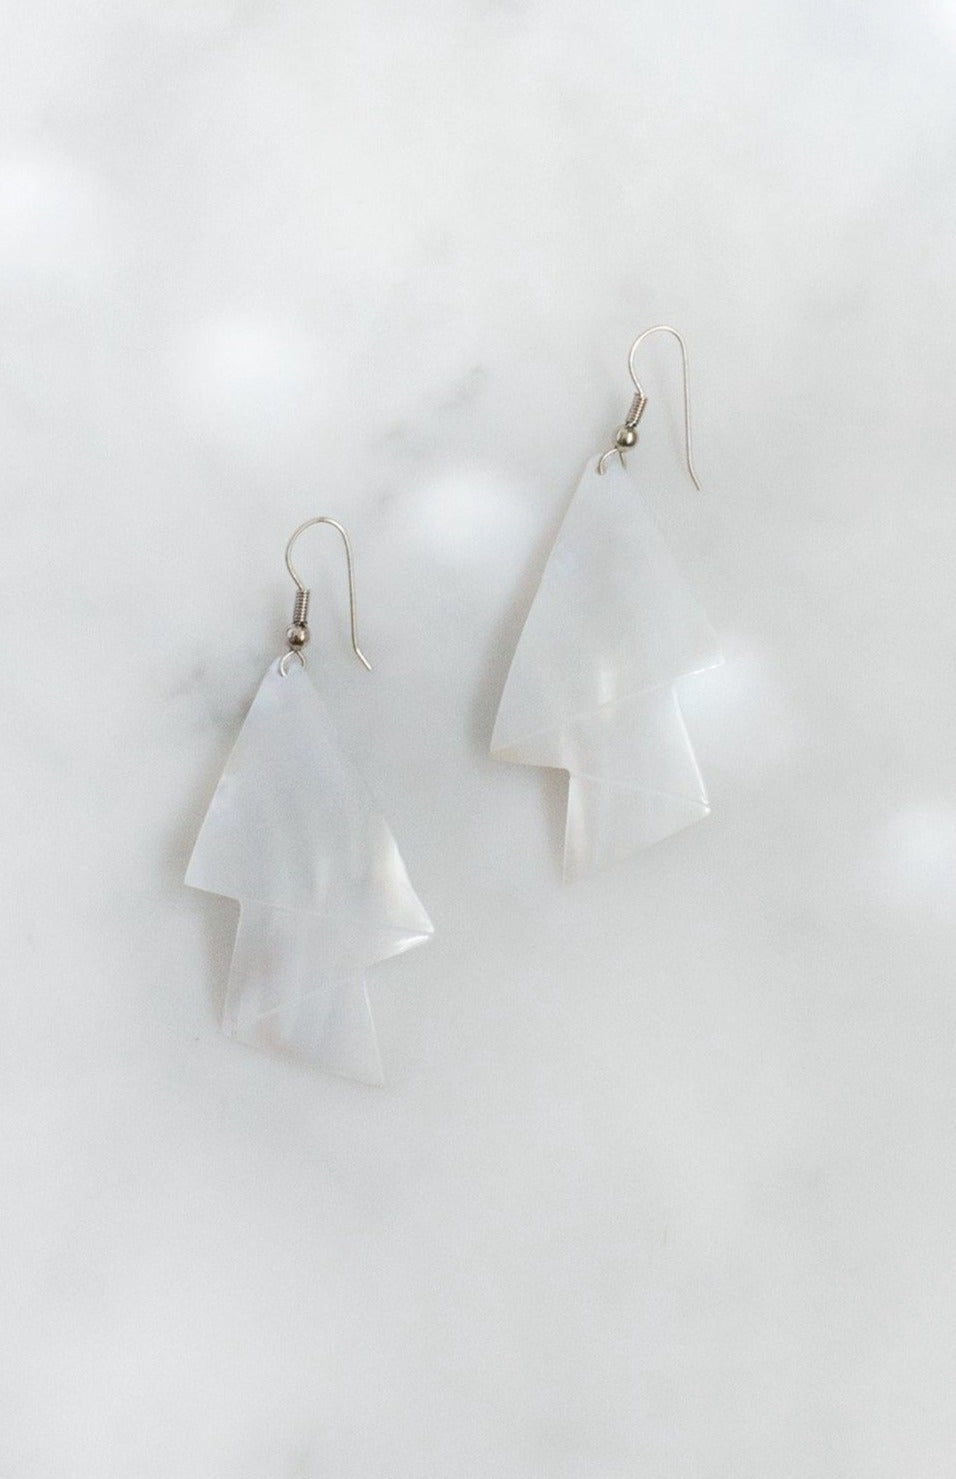 Mother-of-pearl shell earrings with engraved zigzag design and silver-tone wire fastening.